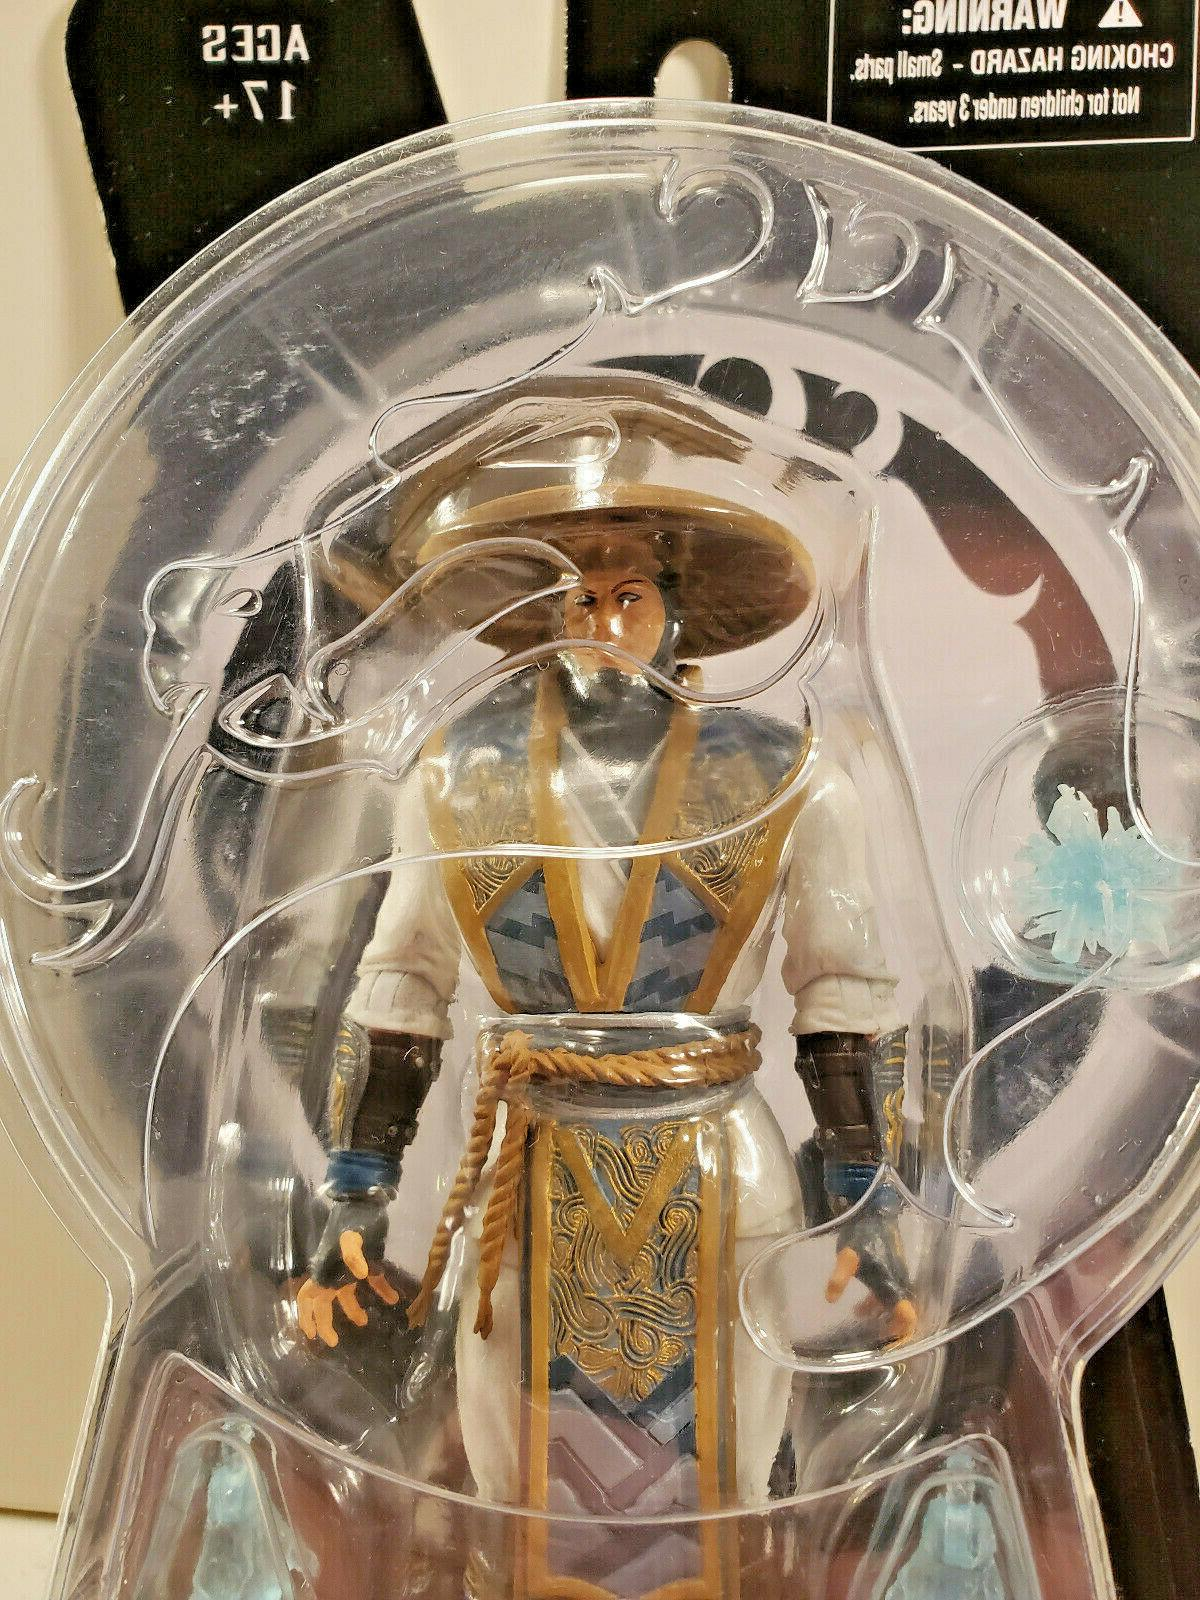 Mezco, Mortal Kombat X, Raiden Action Figure